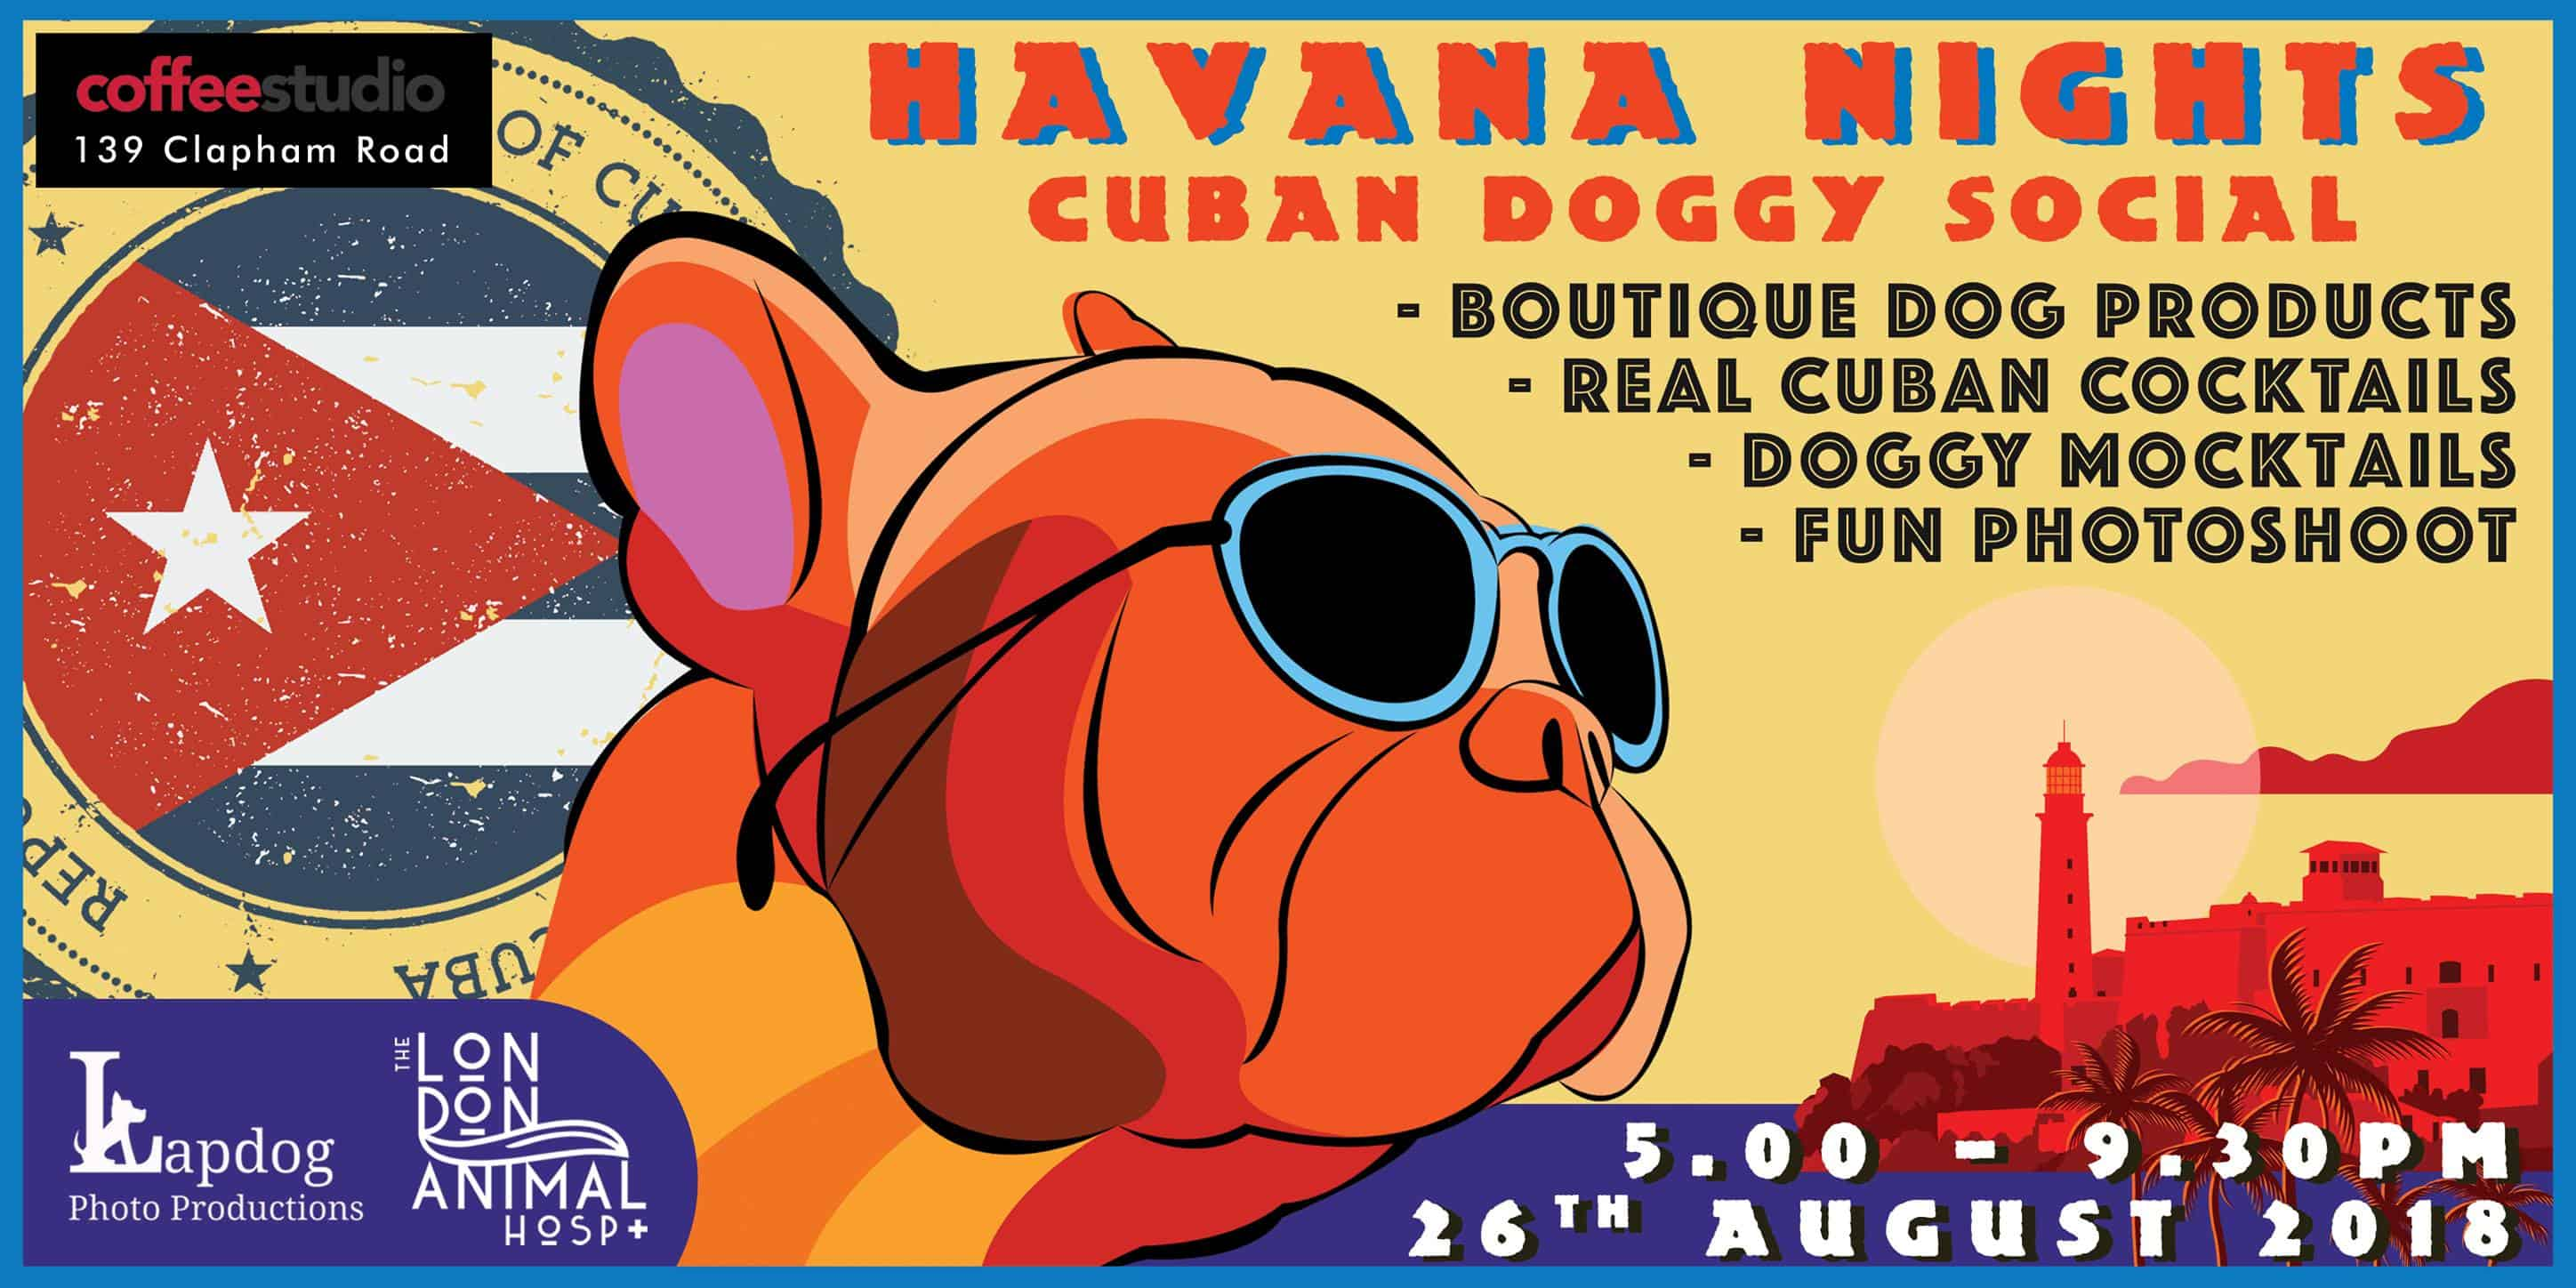 Havana Nights Cuban Themed Pooch Party